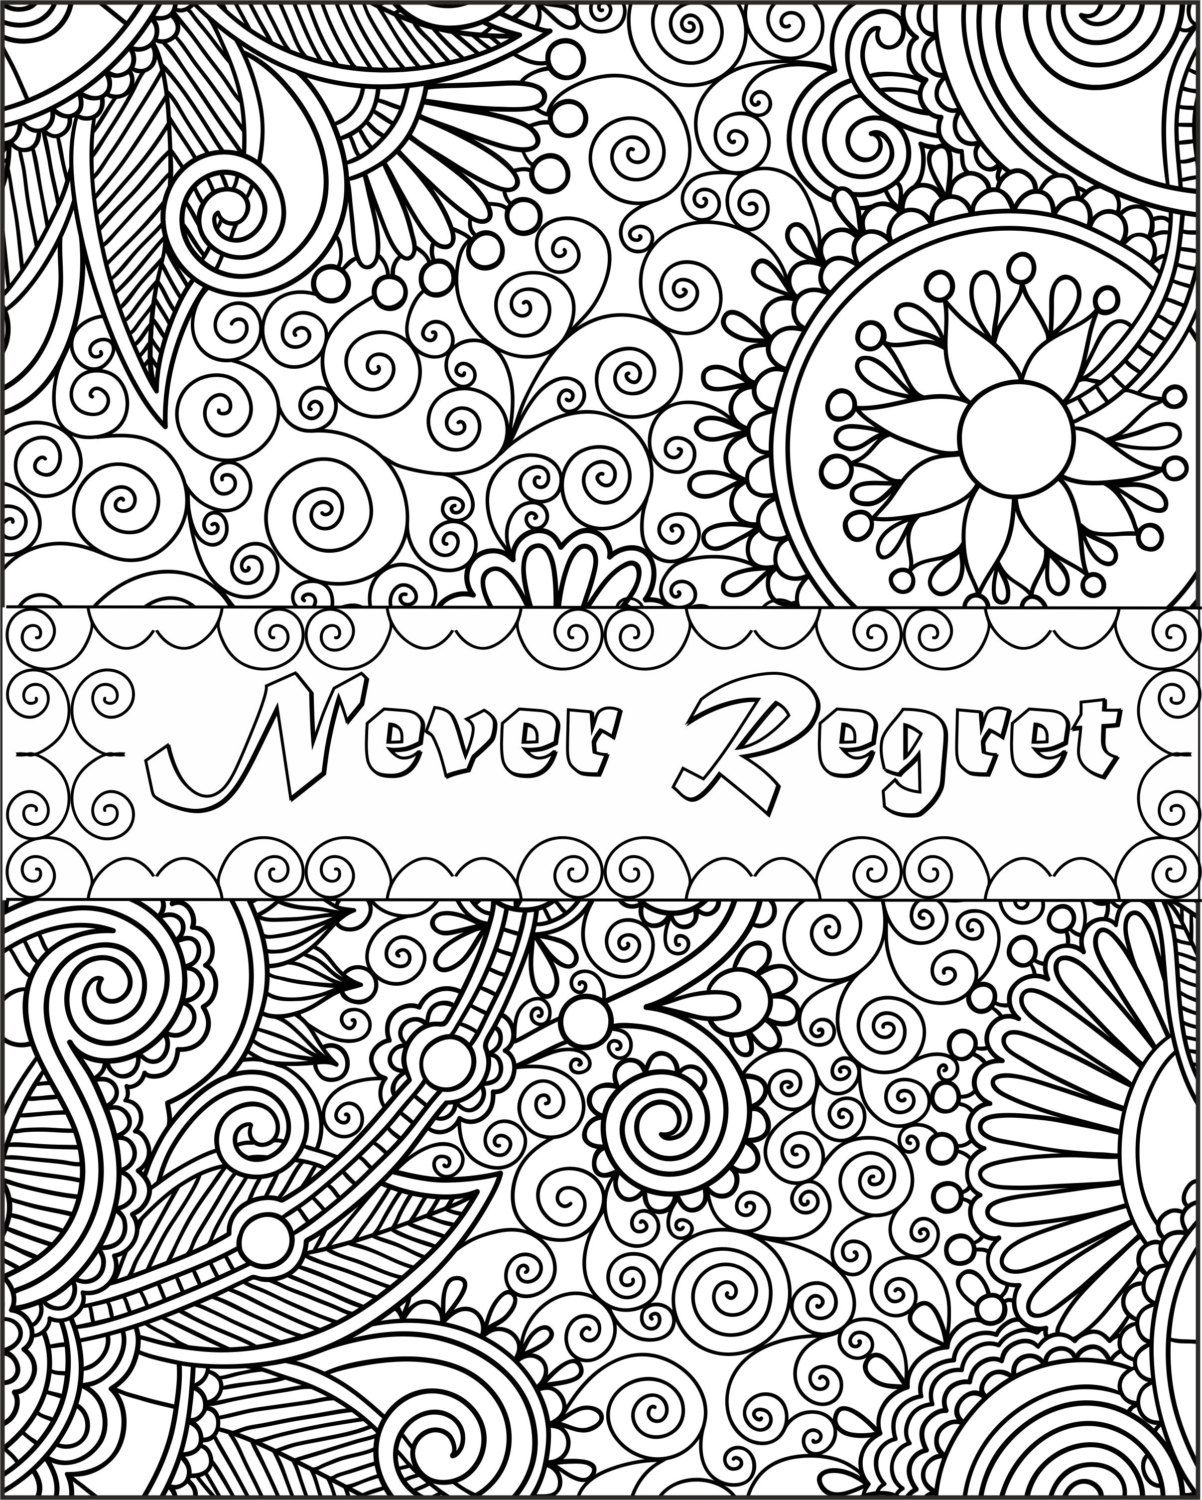 Never Regret Inspirational Fun Quotes Colouring Pages by Download Of Free Printable Quote Coloring Pages for Grown Ups Download